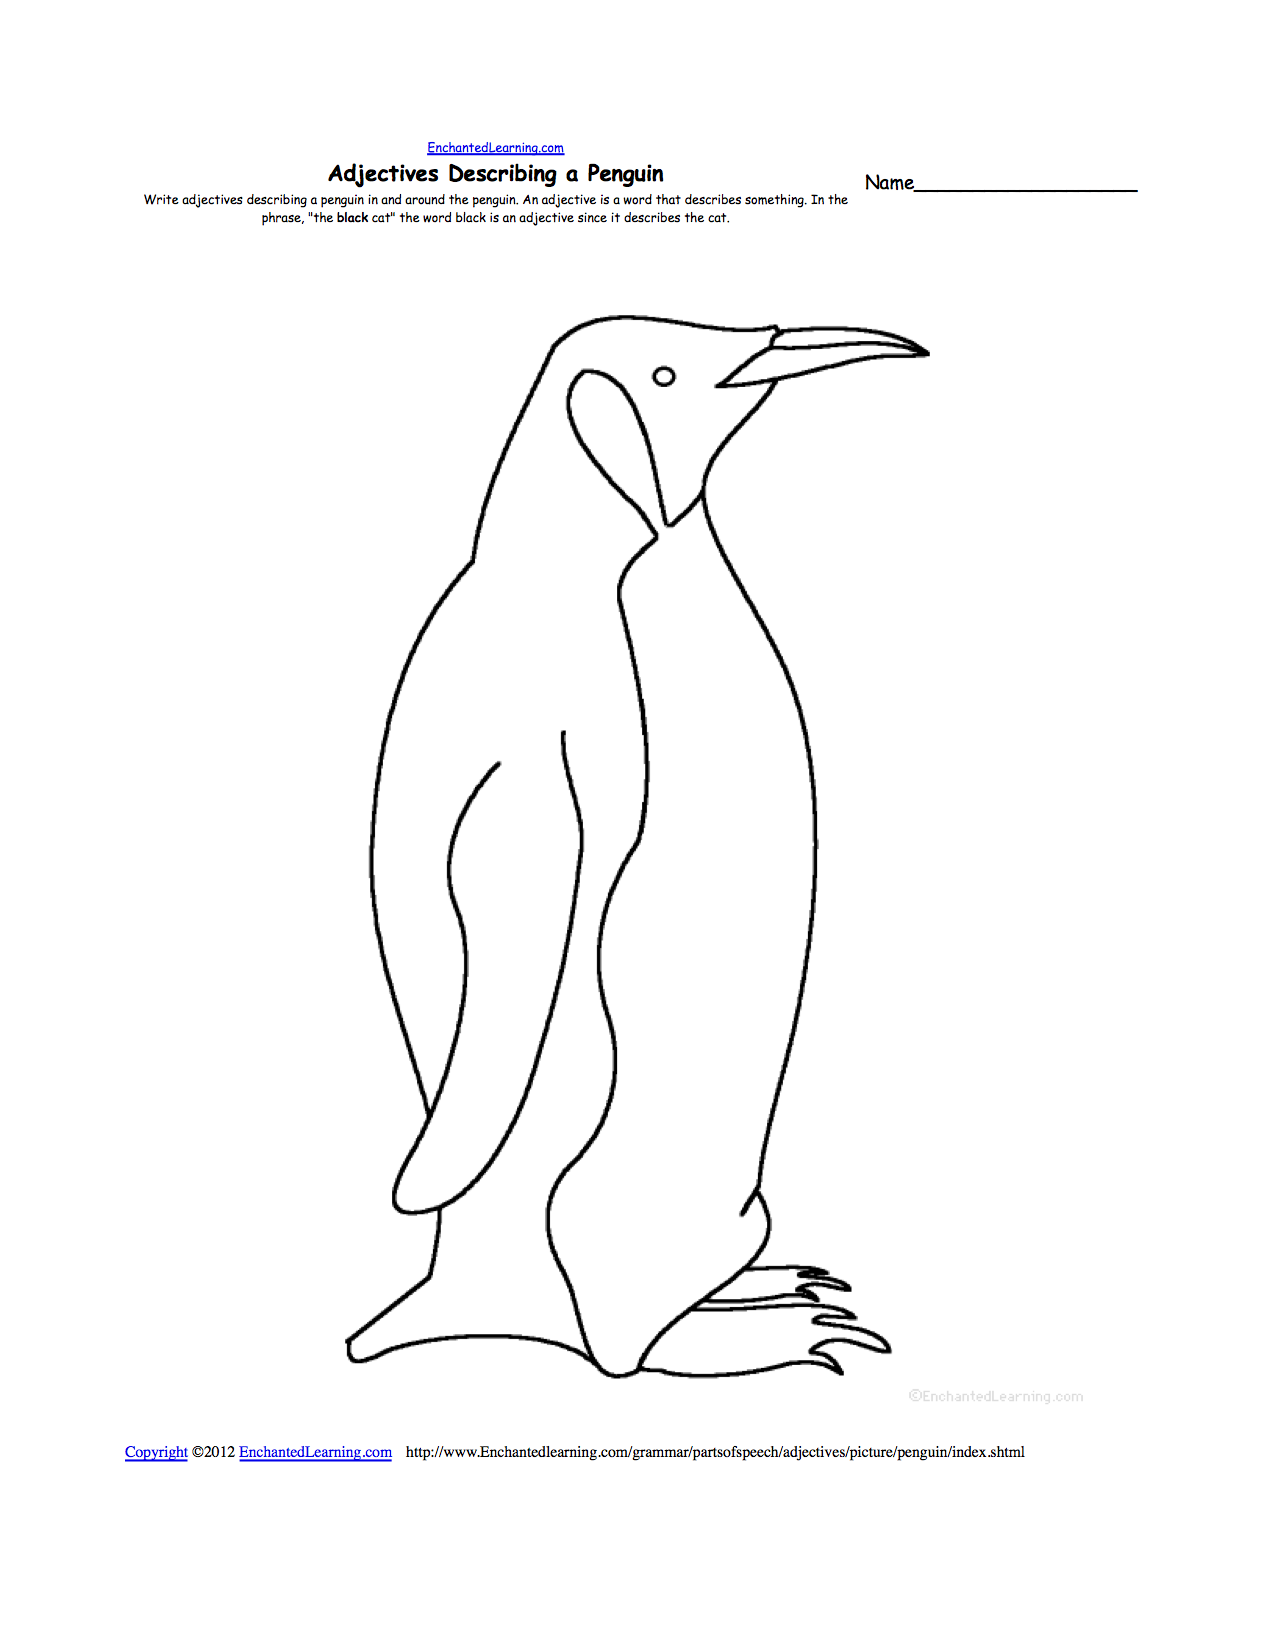 penguins at enchantedlearning com